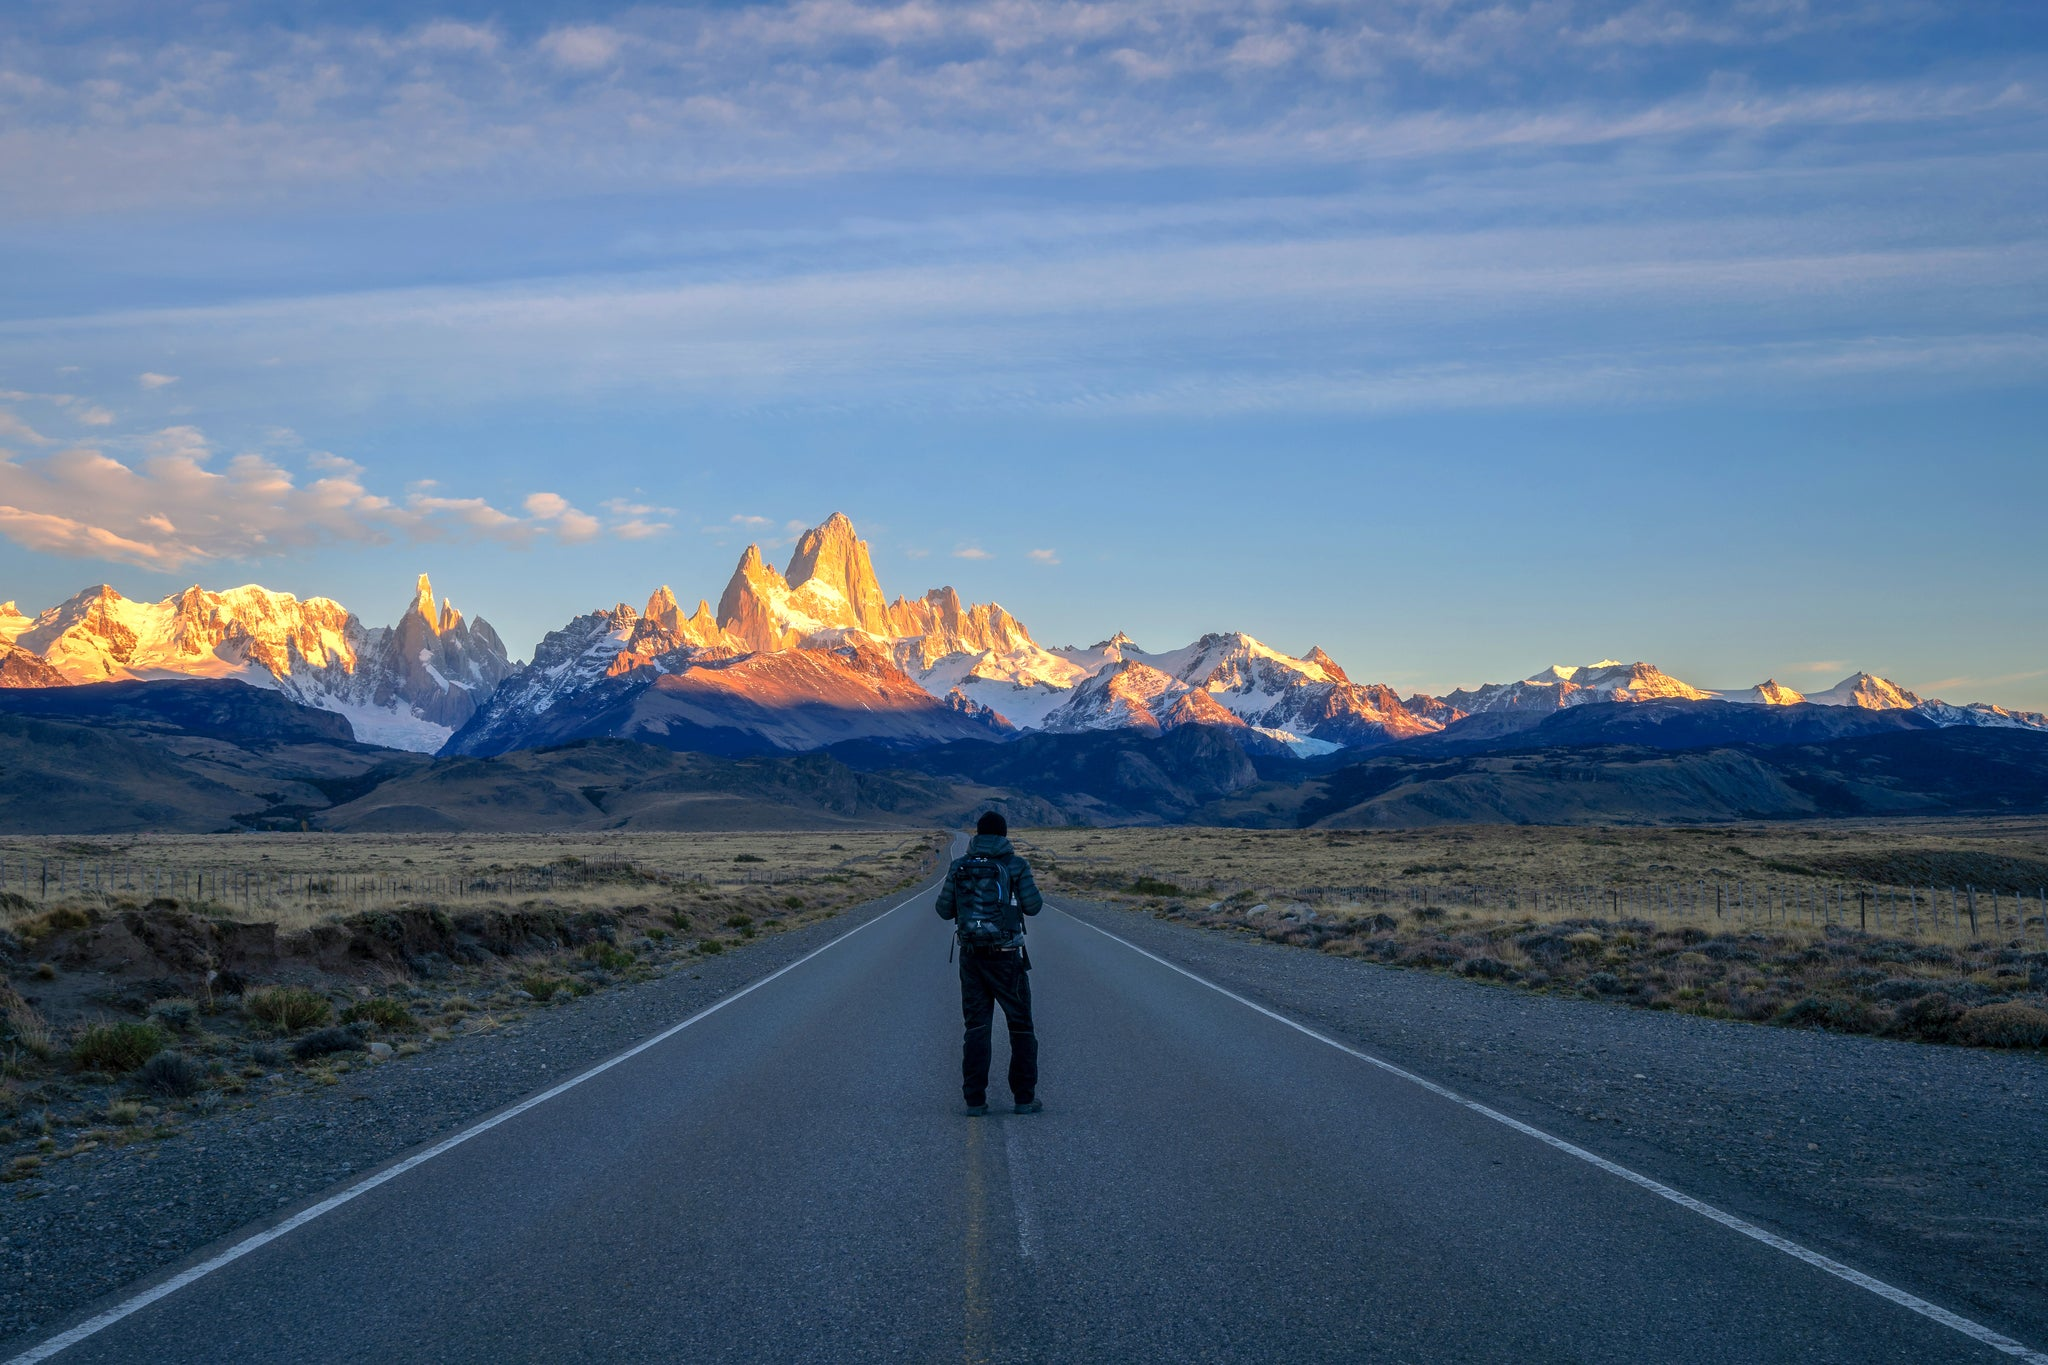 A Photography Trip to Patagonia